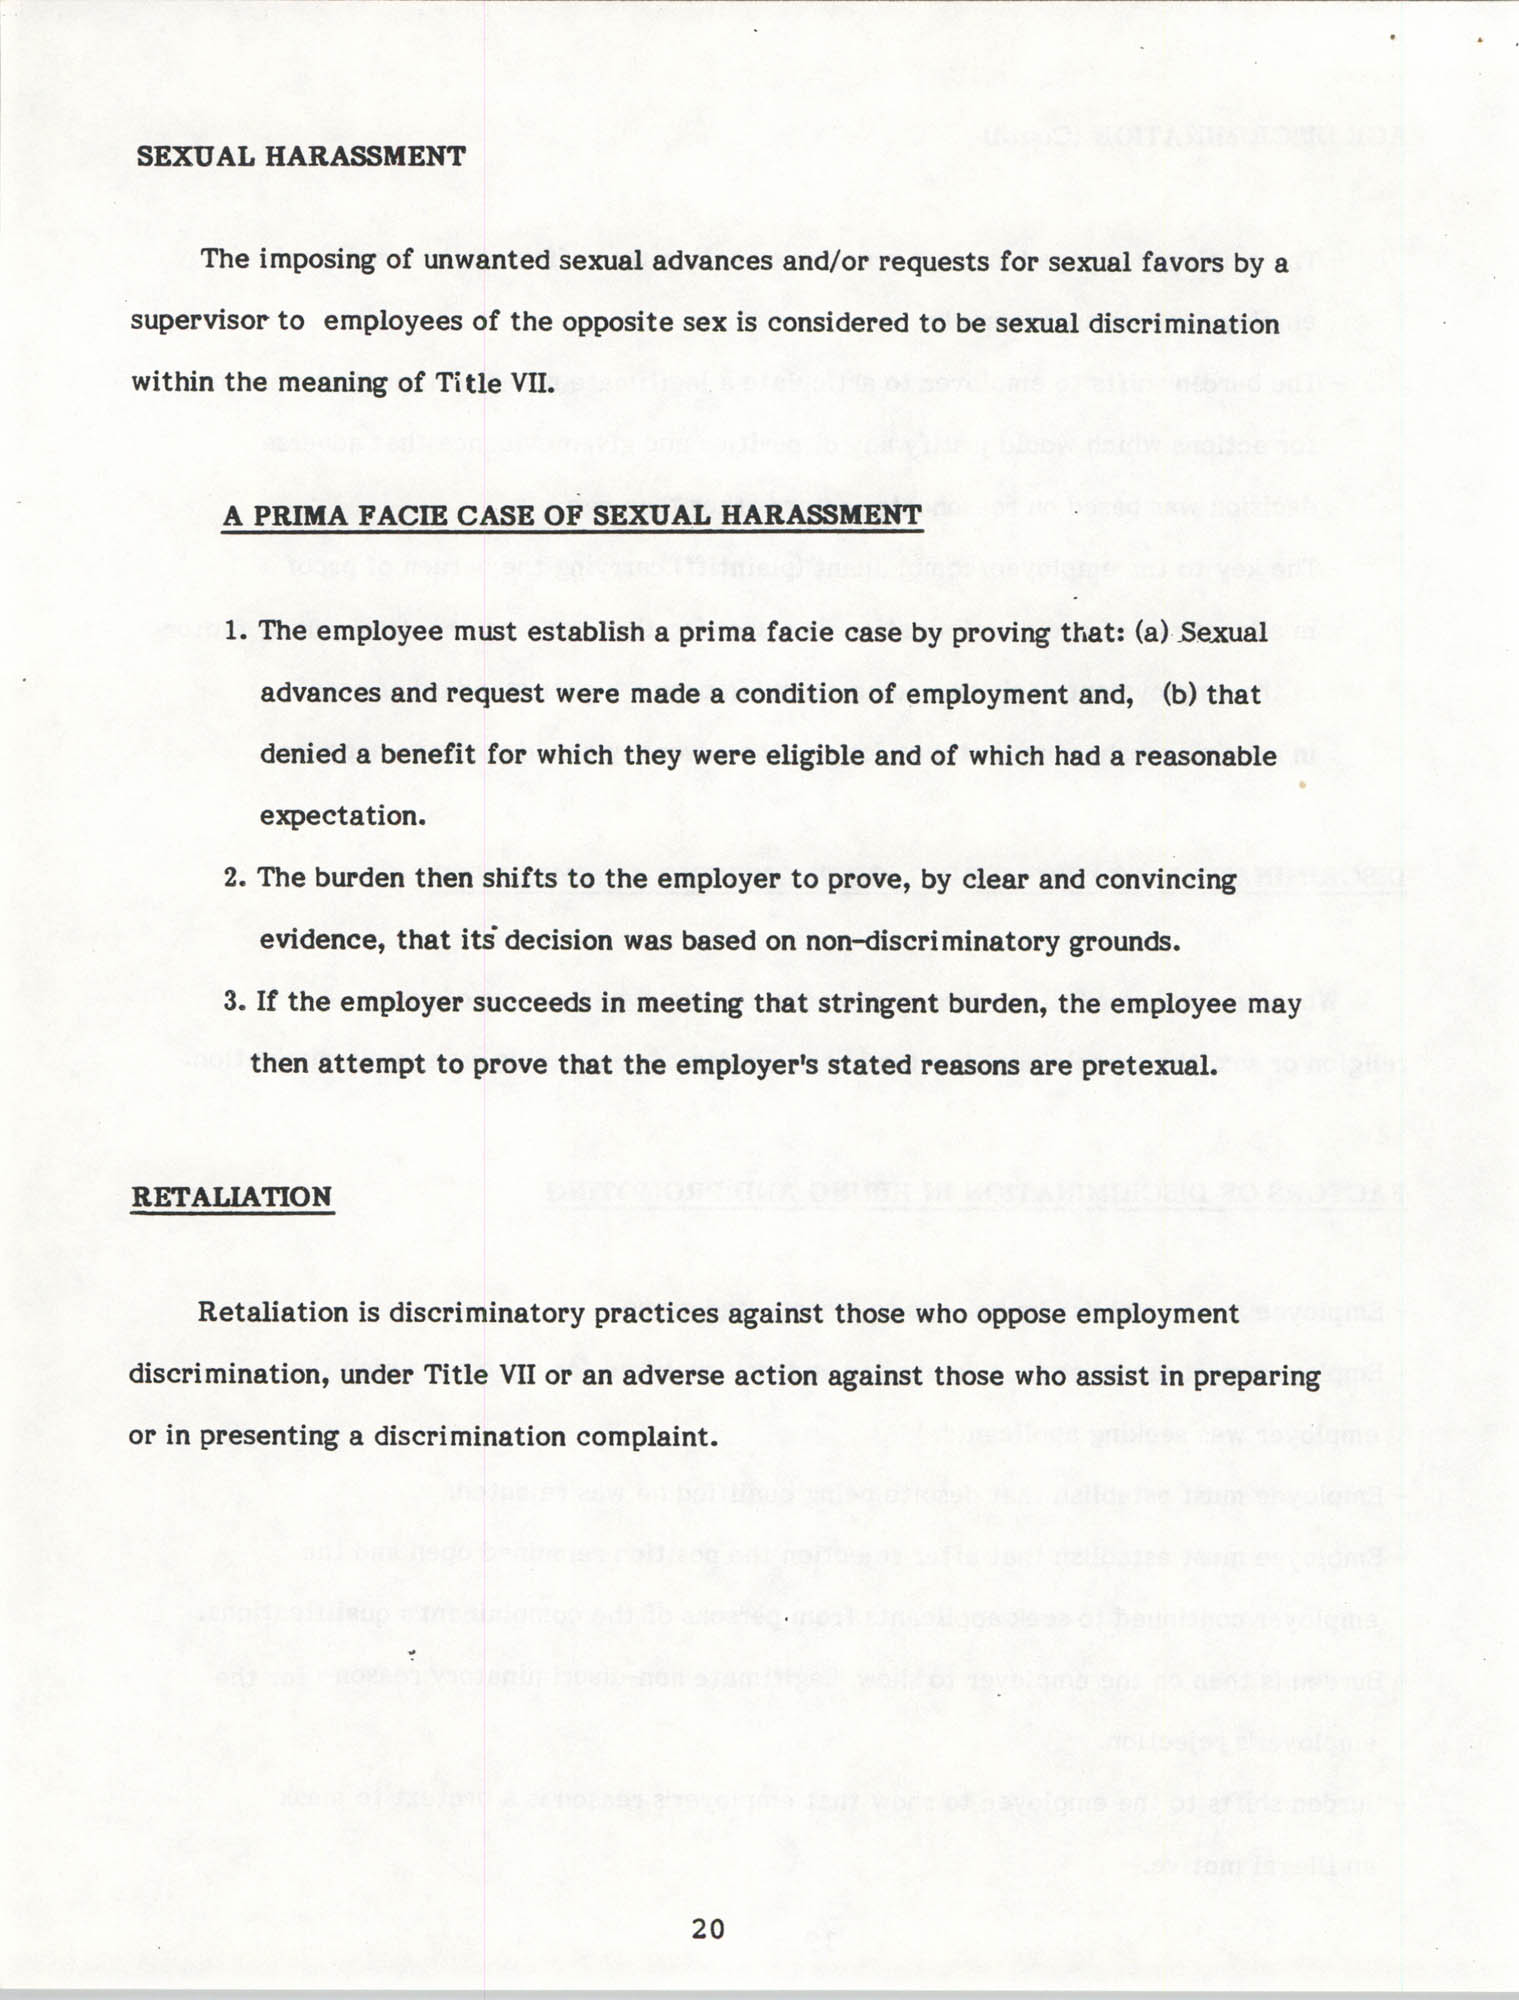 Handbook for Addressing Discrimination Complaints, NAACP Labor and Industry Committees, Page 20